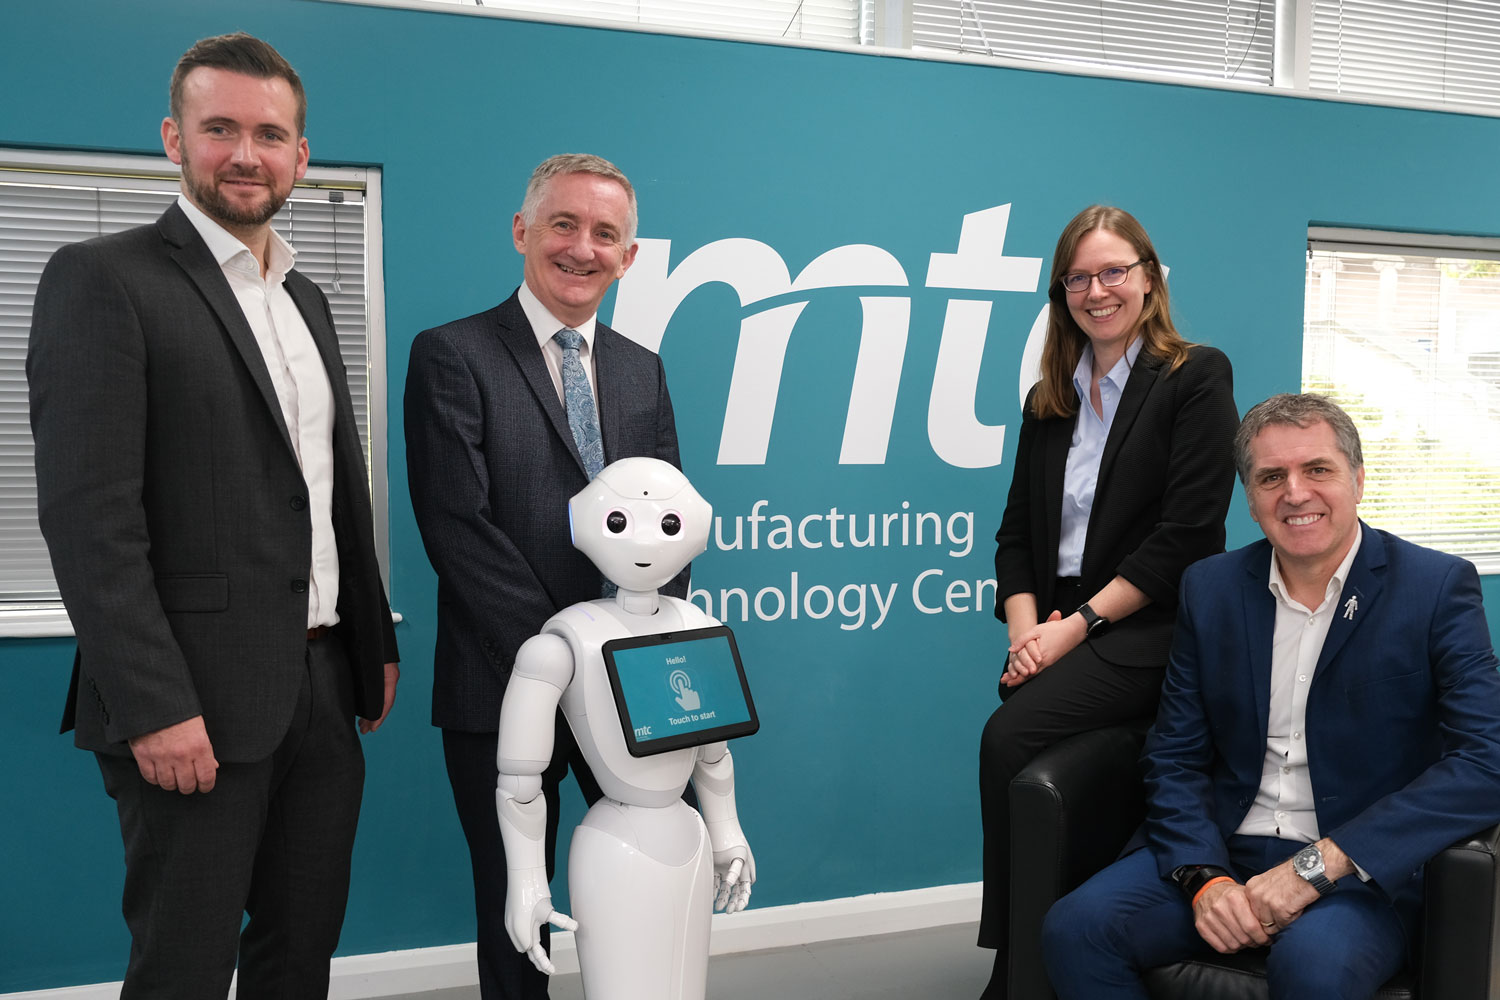 Charlie Whitford, associate director for strategic development (MTC); Jonathon Shaw, director of technical resources (MTC); Pepper the humanoid robot; Hannah Edmonds, technical specialist (MTC); and Metro Mayor of the Liverpool City Region, Steve Rotheram.